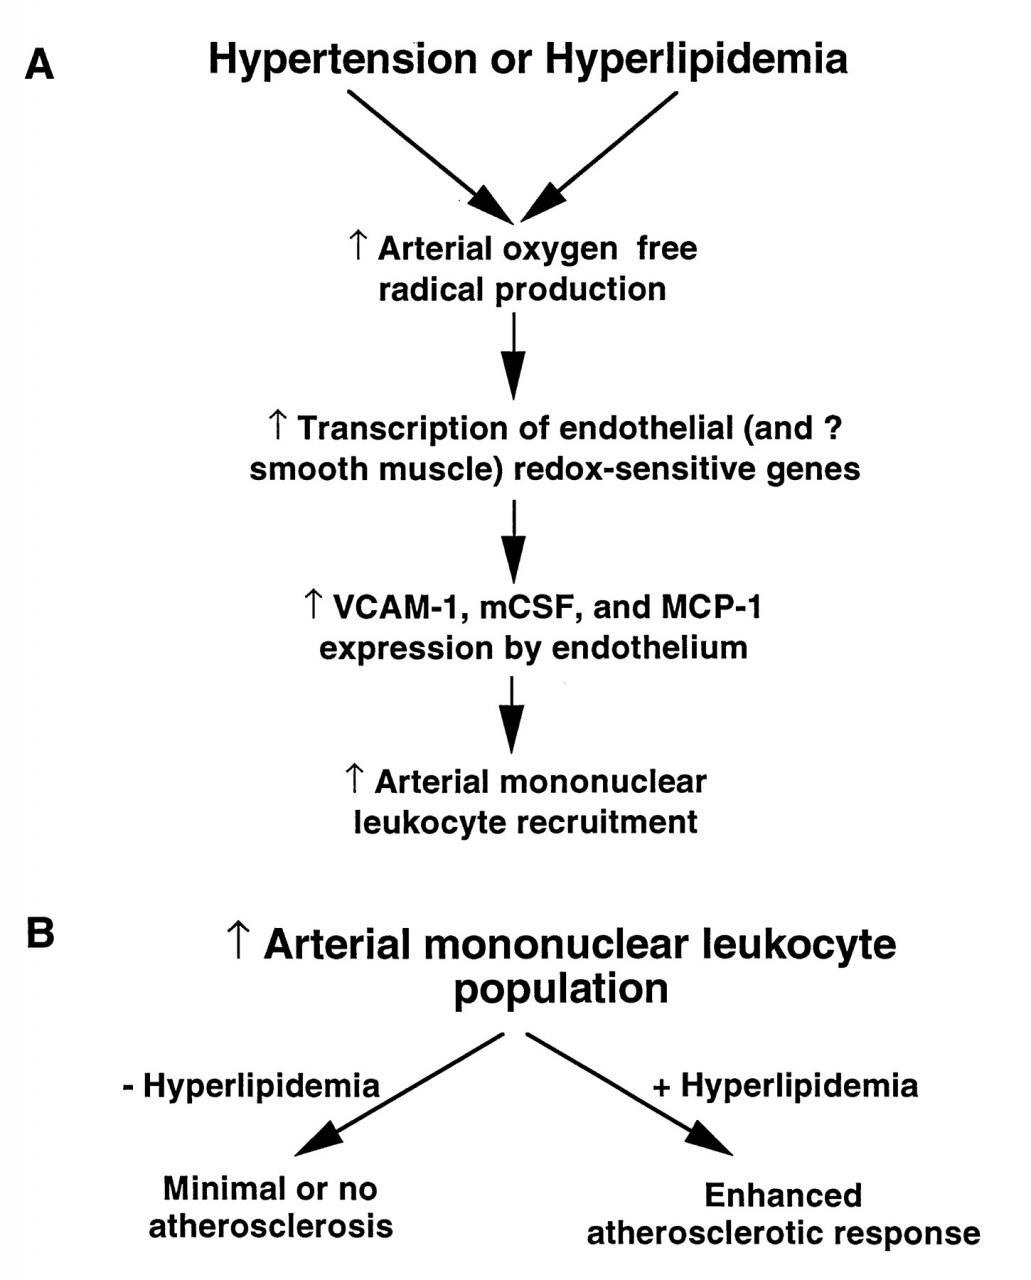 Hypertension and the Pathogenesis of Atherosclerosis   Hypertension